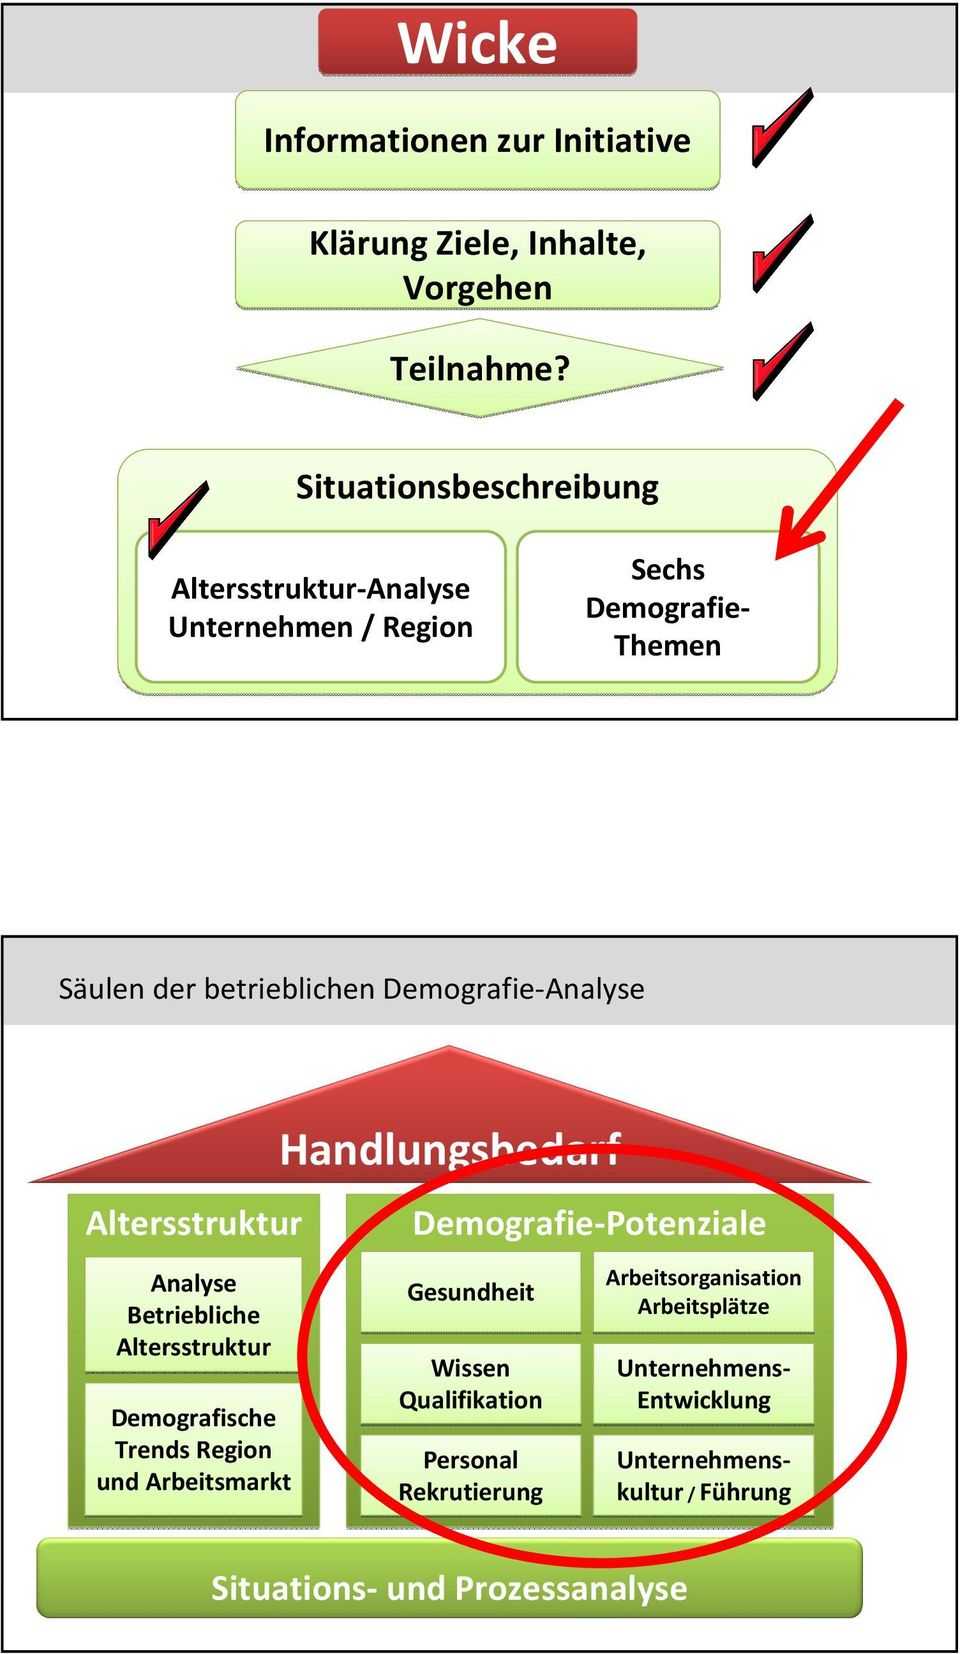 Demografie-Analyse Altersstruktur Analyse Betriebliche Altersstruktur Demografische Trends Region und Arbeitsmarkt